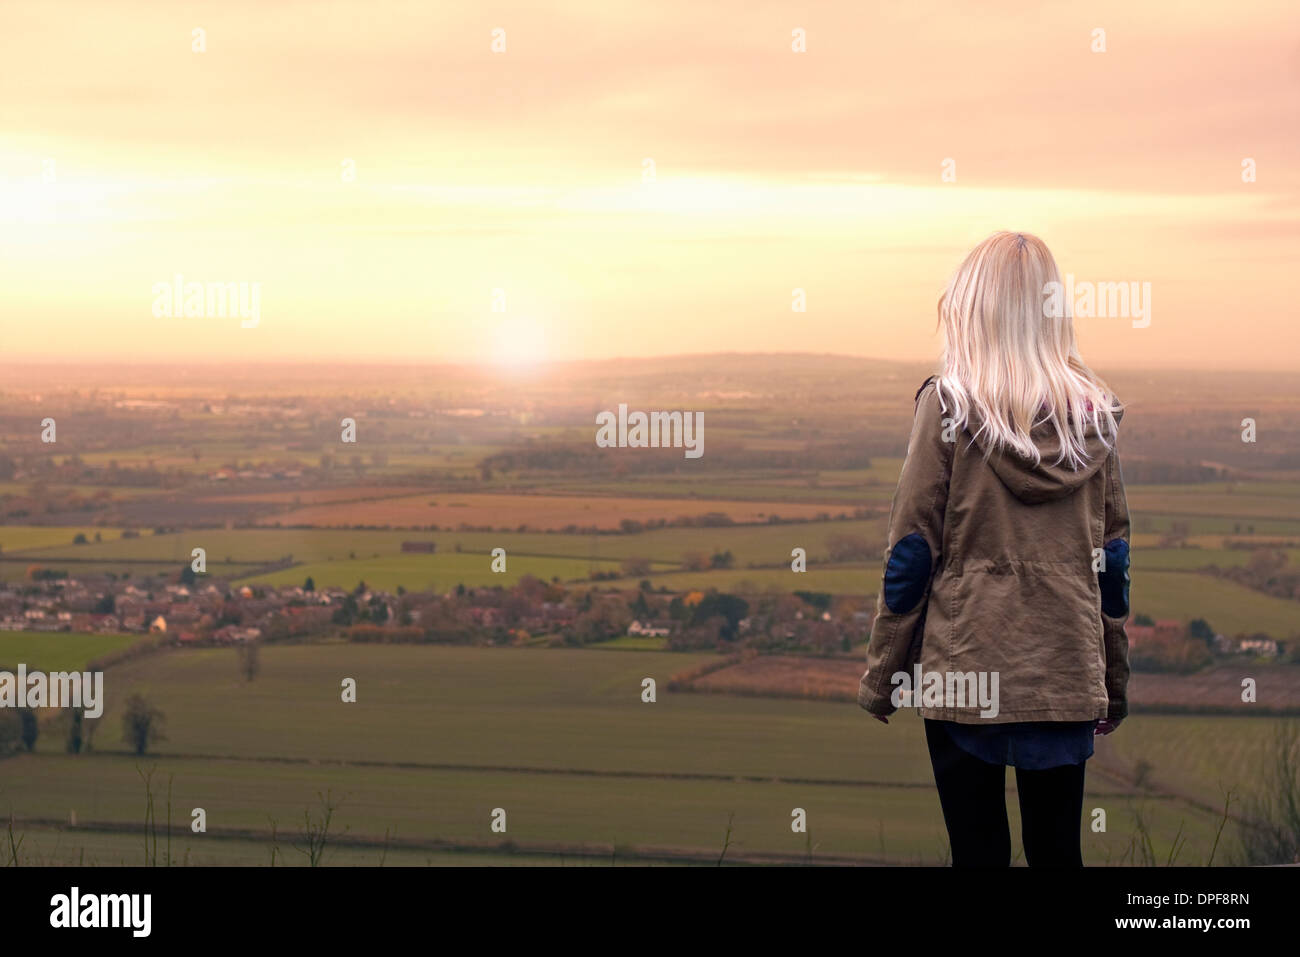 Young woman watching sunrise over rural landscape - Stock Image